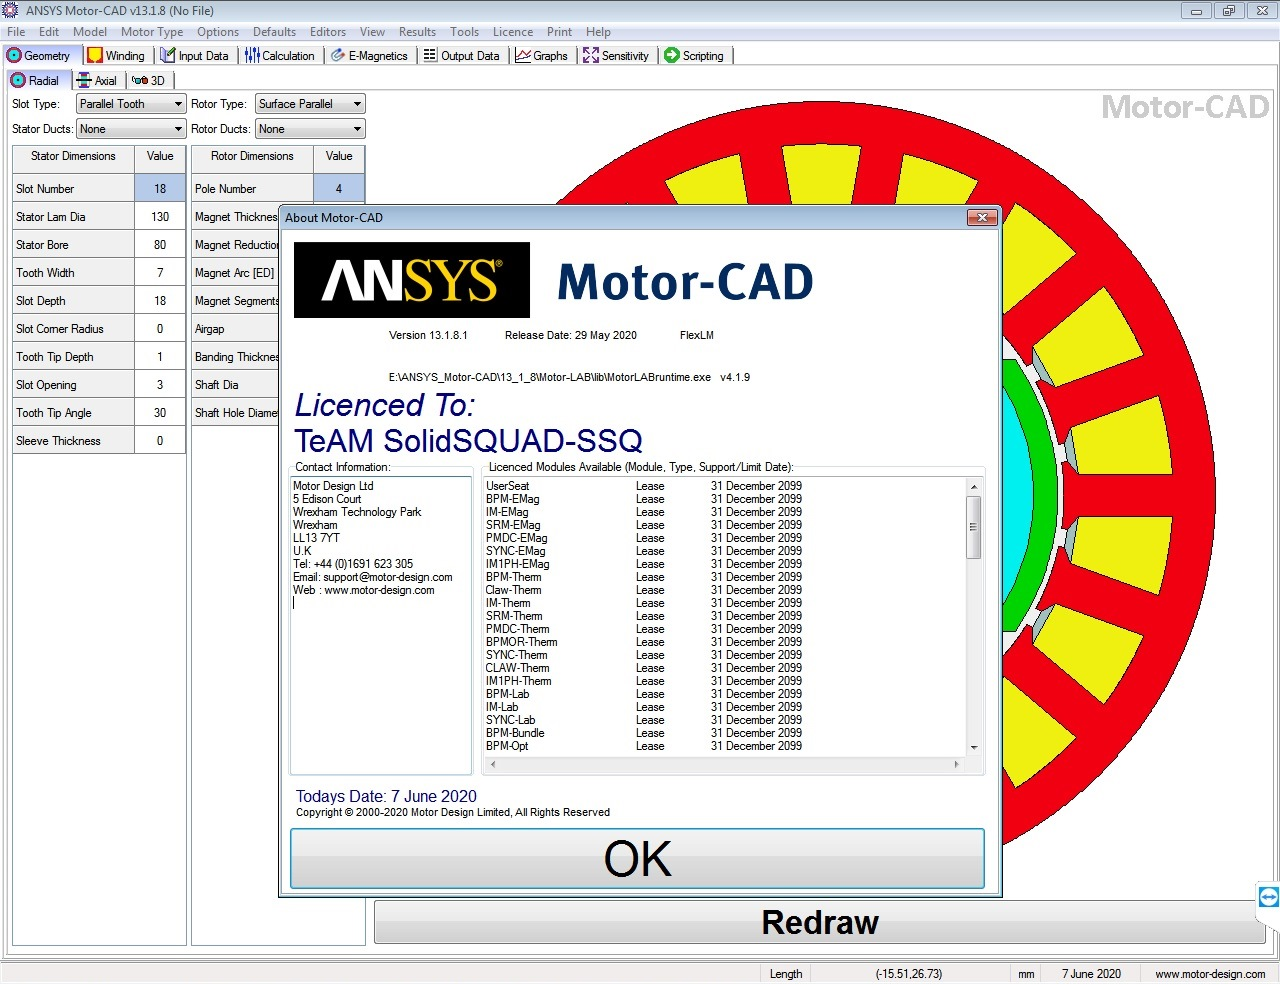 Working with ANSYS Motor-CAD v13.1.8 full license